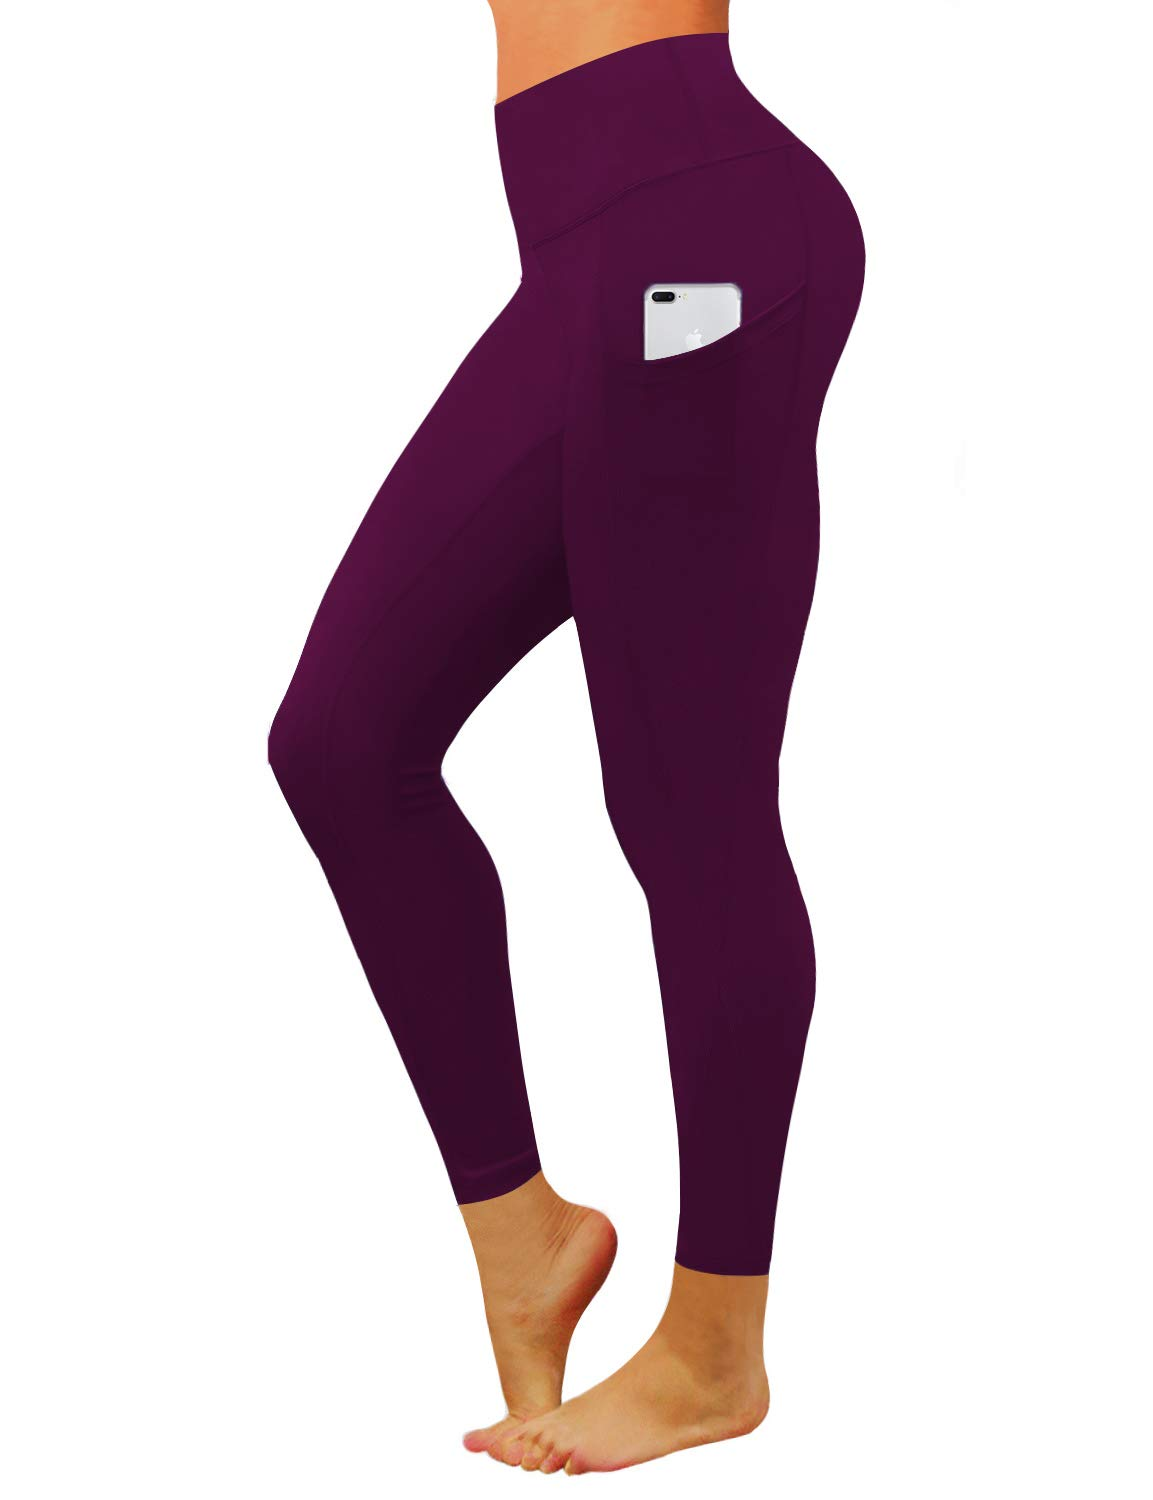 BUBBLELIME 22''/26''/28'' Inseam High Compression Yoga Pants Out Pocket Running Pants High Waist UPF30+